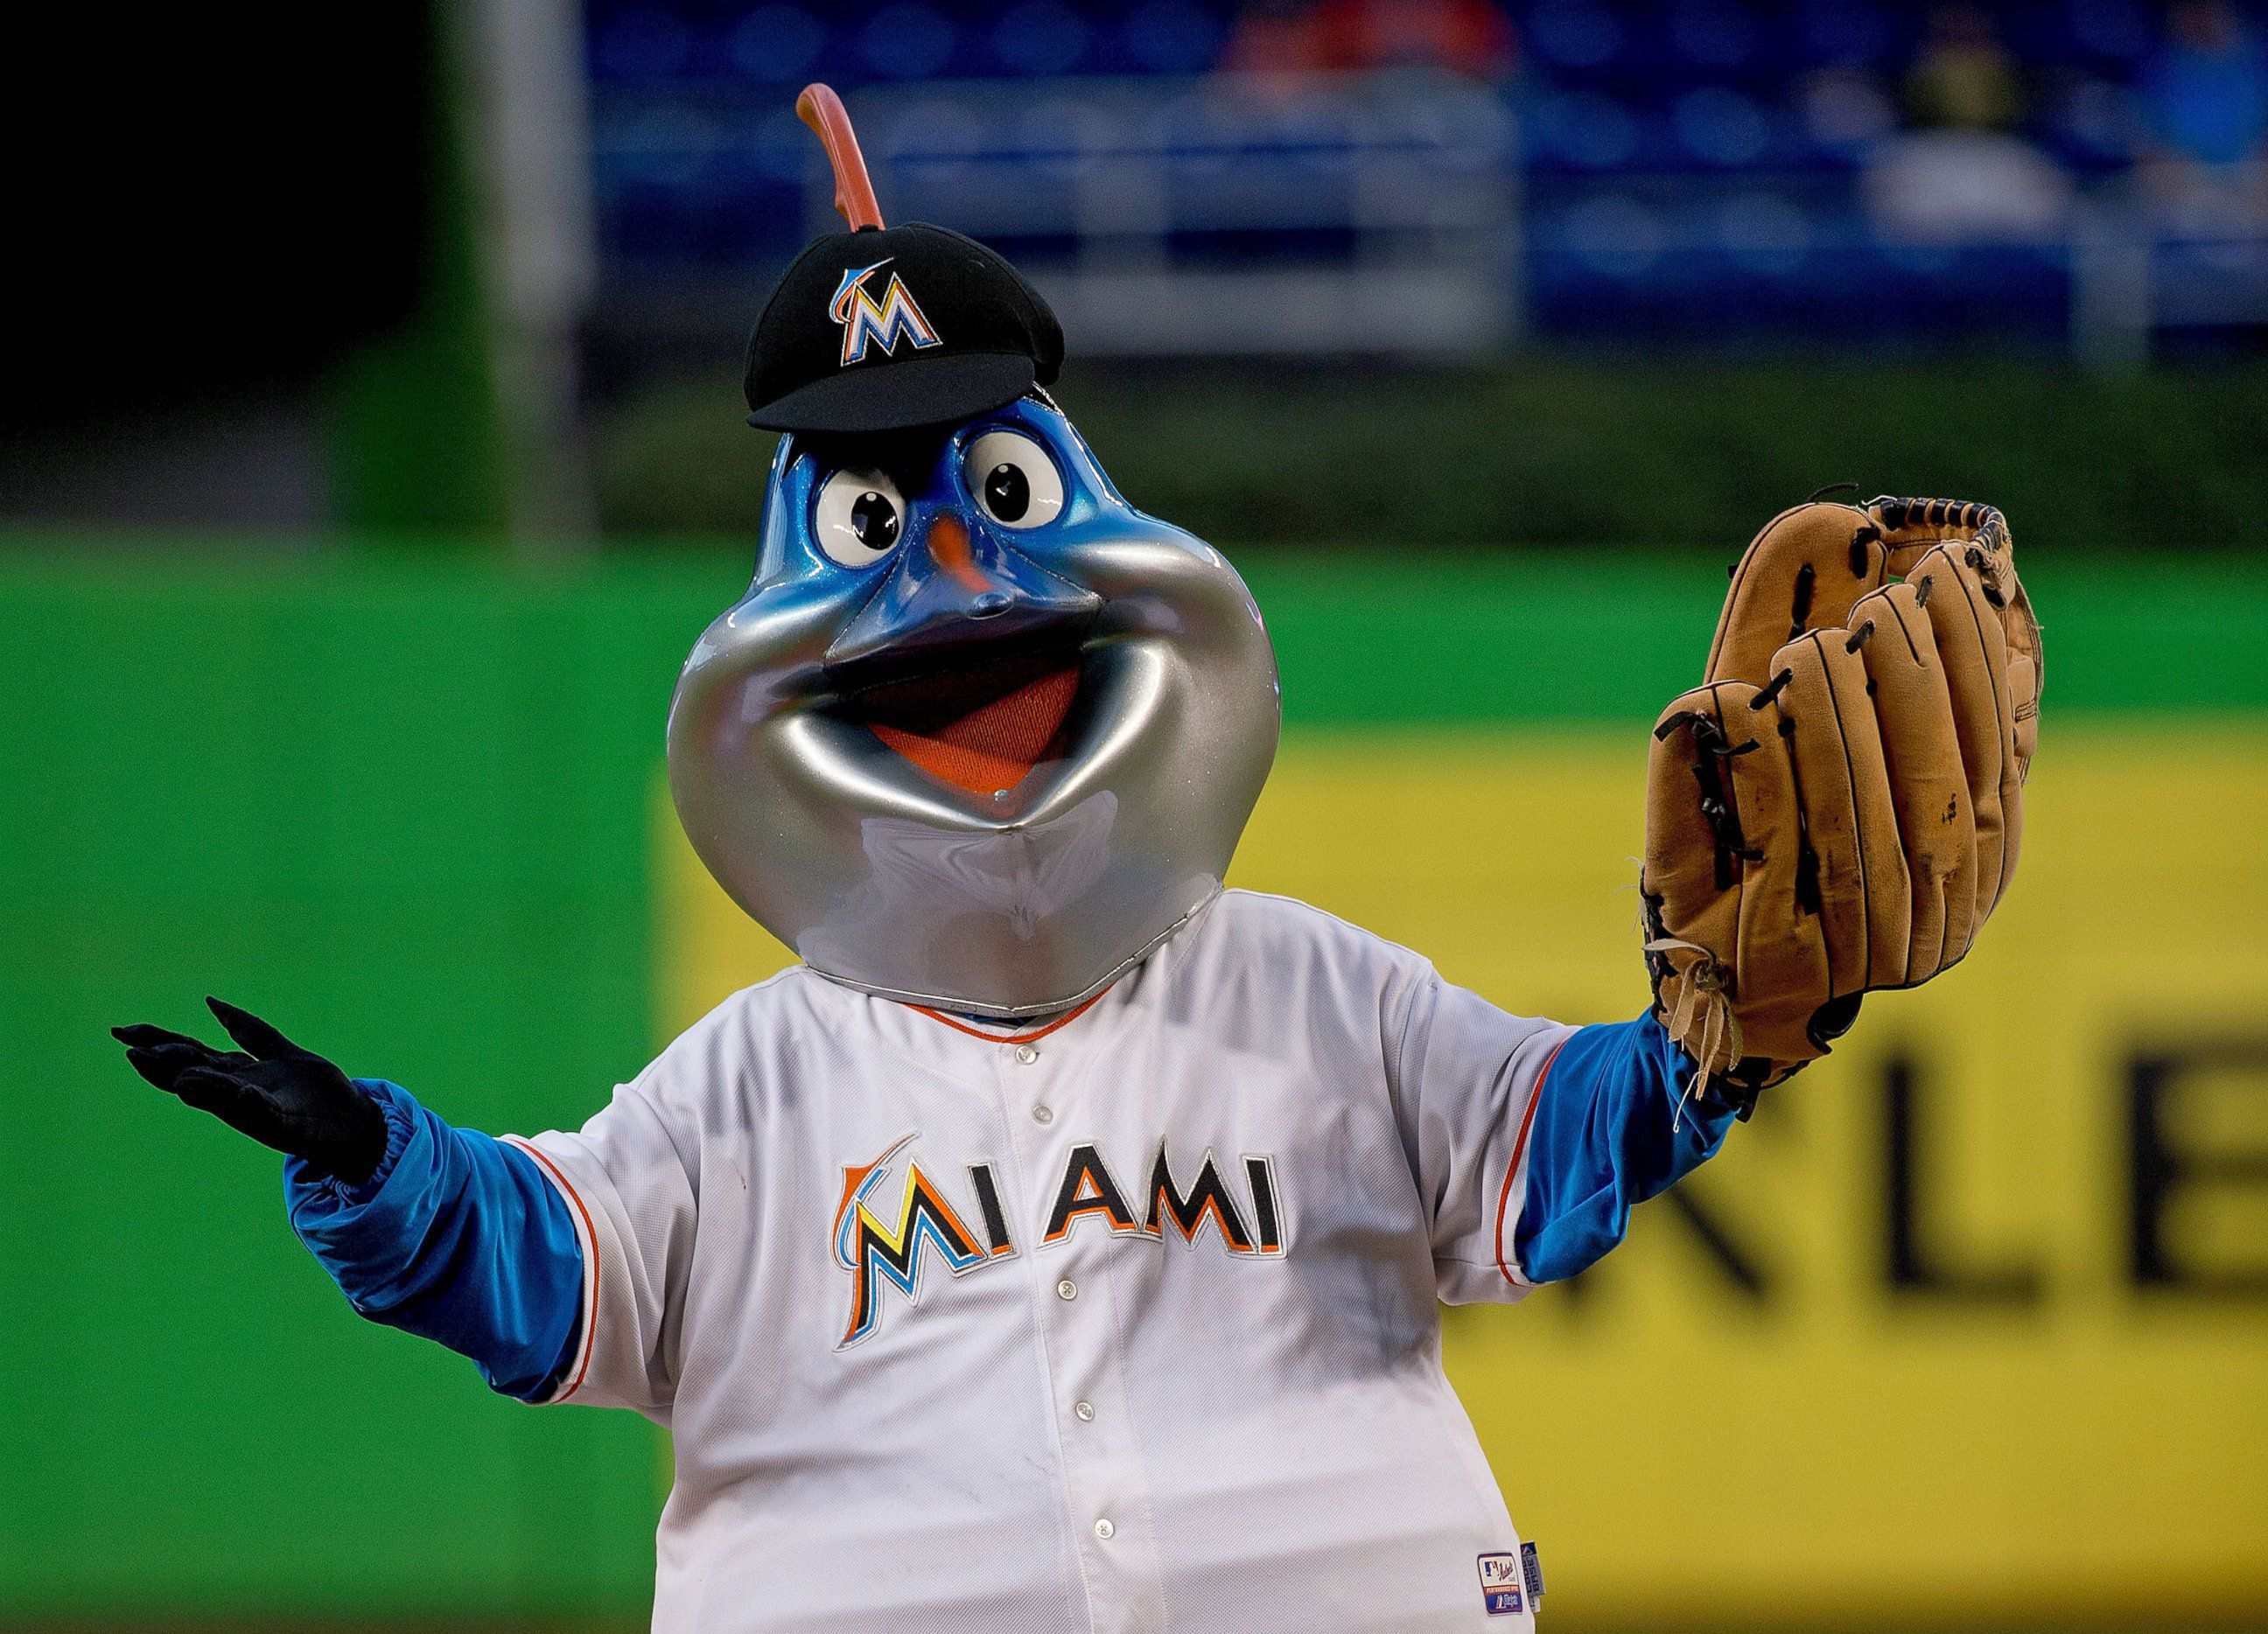 Miami Marlins High Definition Wallpapers